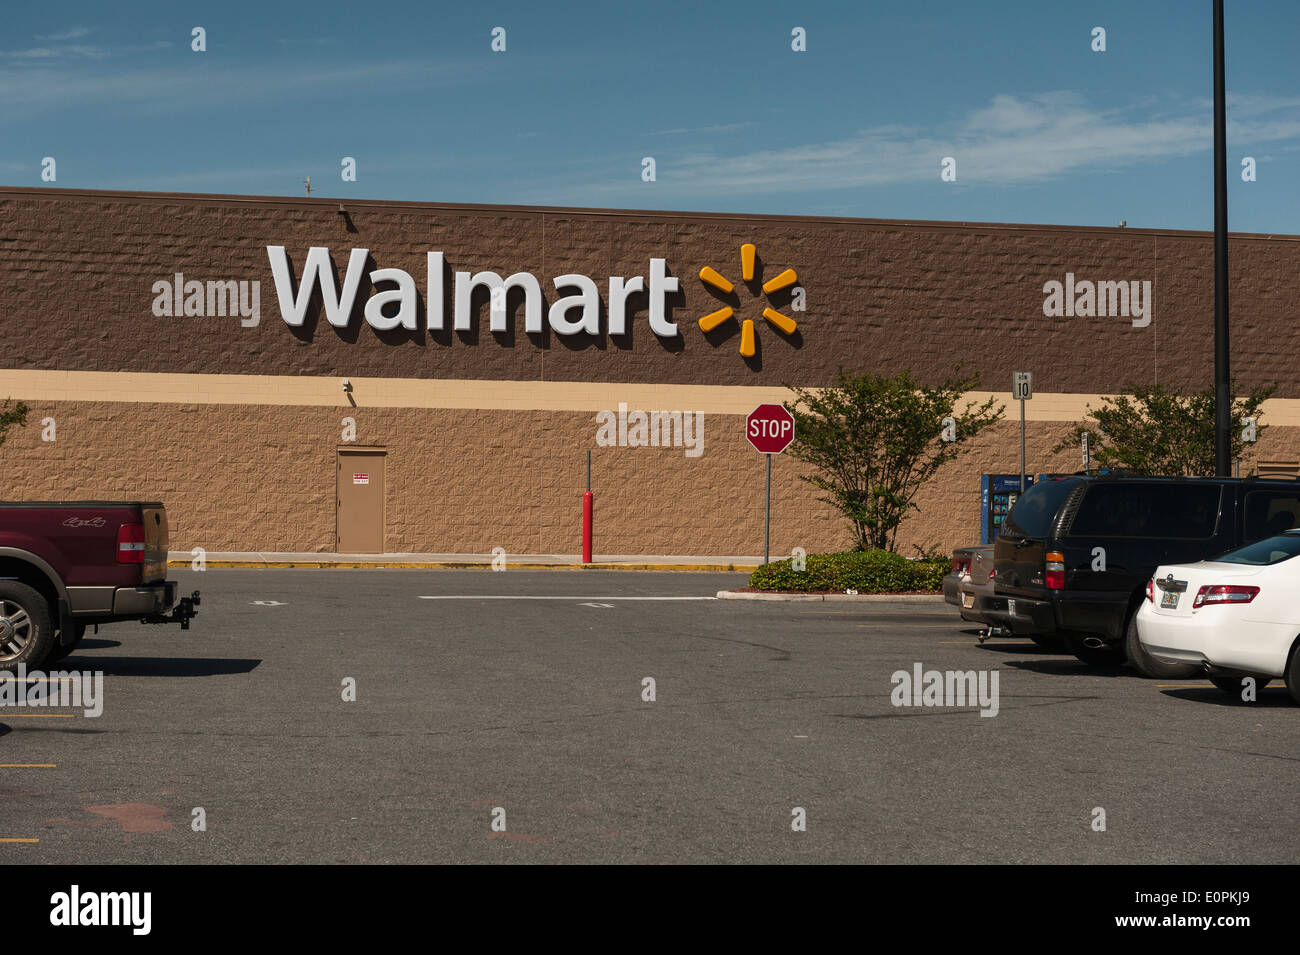 Wal Mart Store Parking Lot In Stock Photos & Wal Mart Store Parking ...